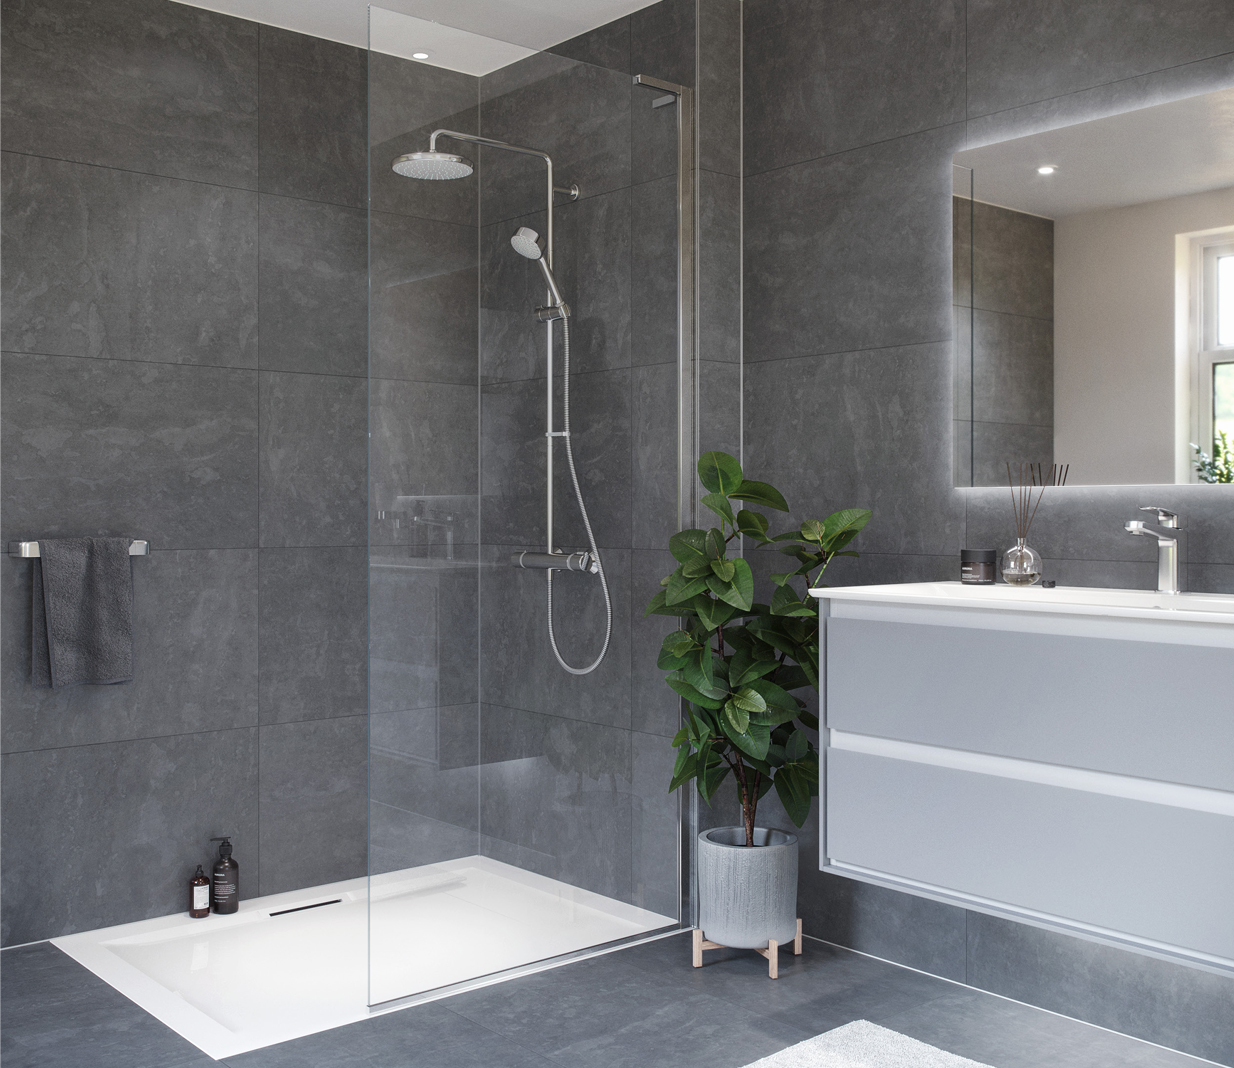 Benefits of bar shower valves by Mira Showers